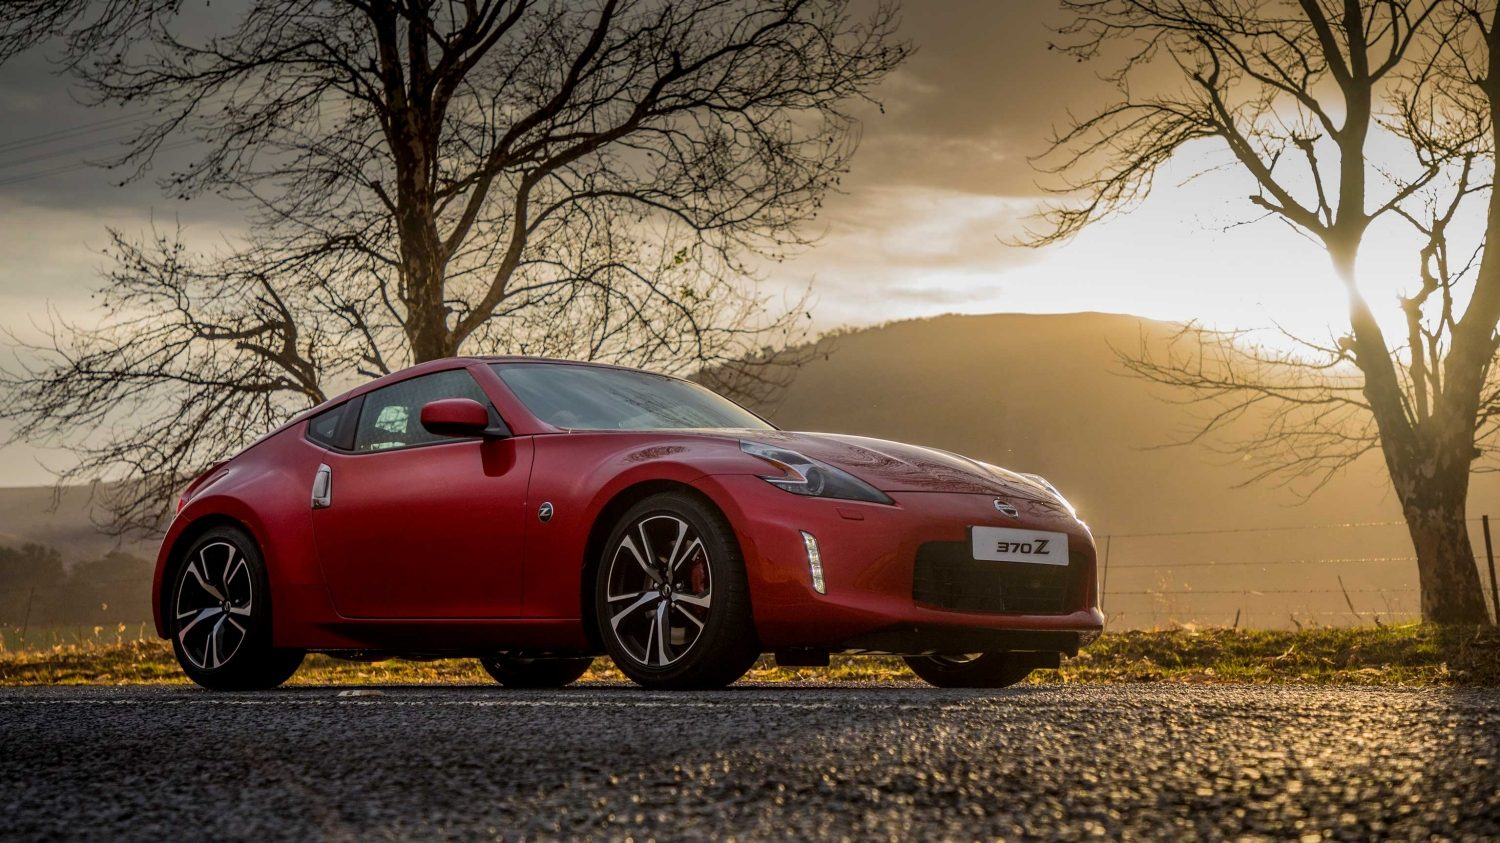 370Z local sunset